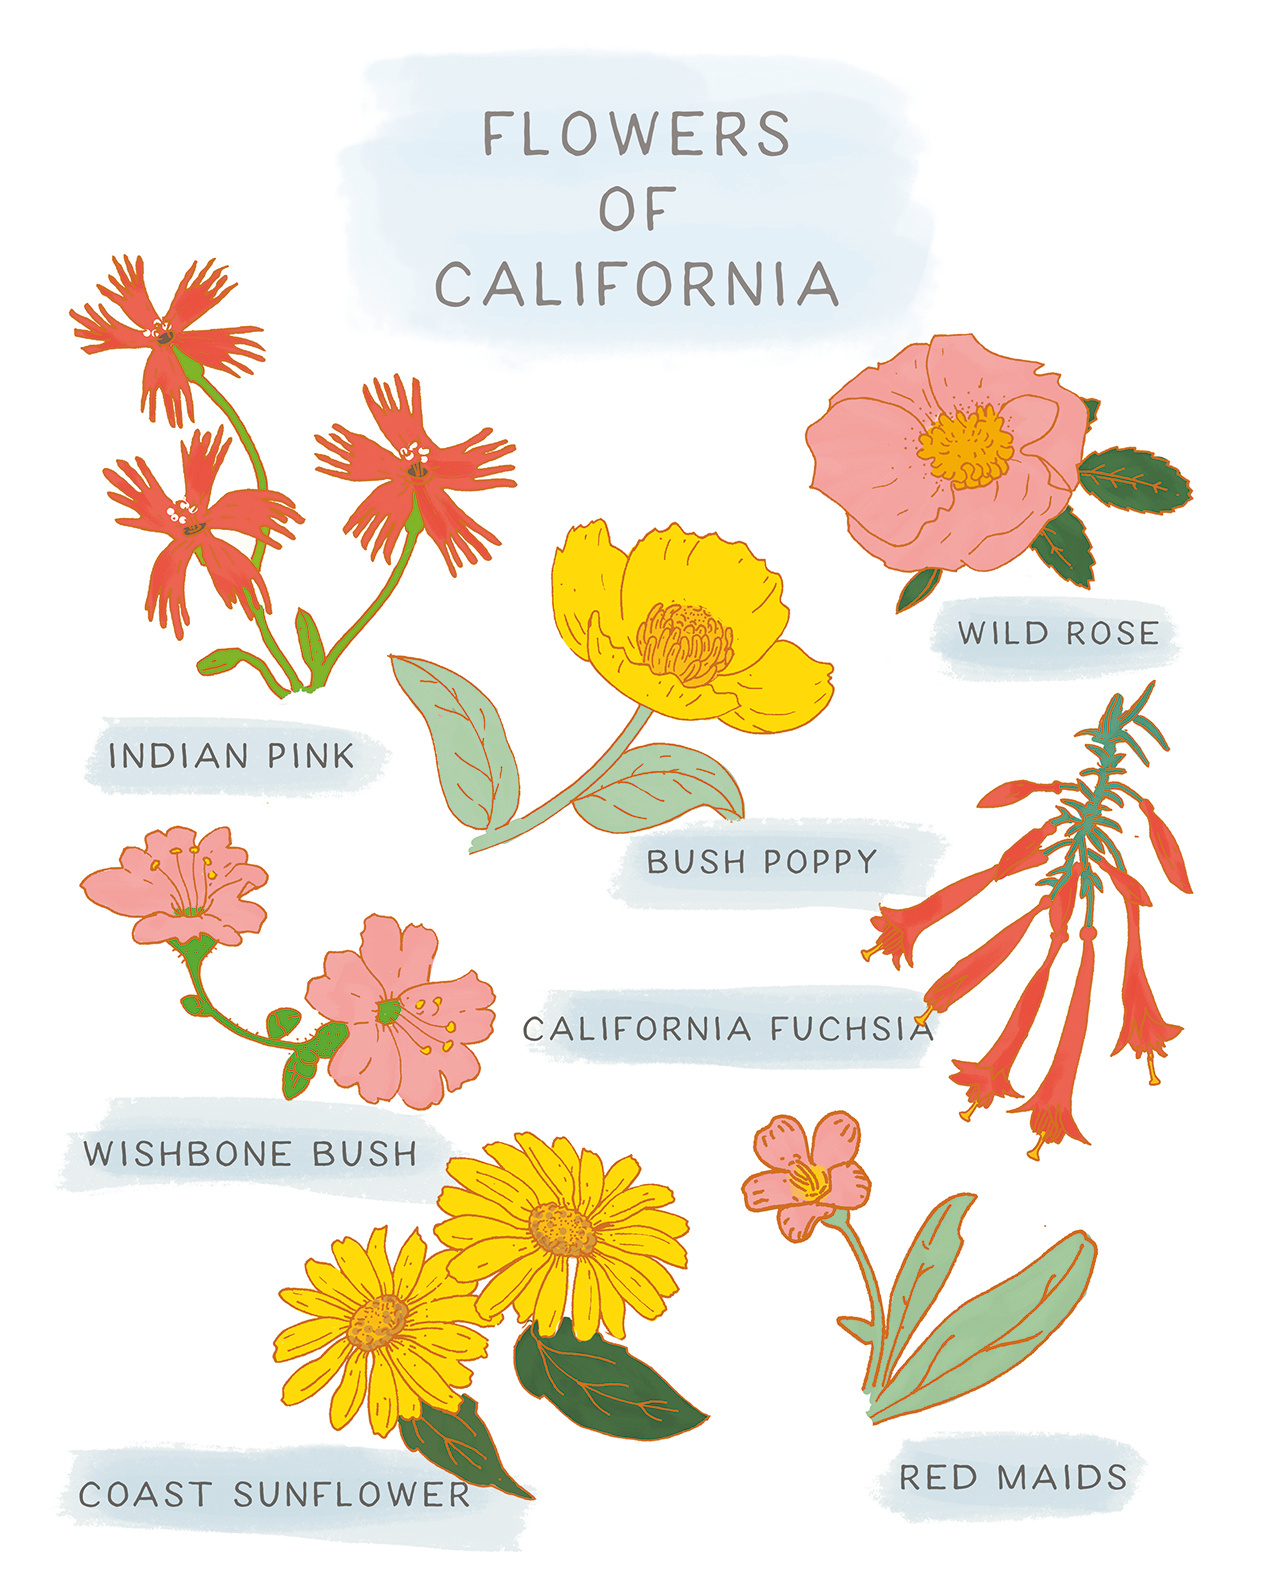 Flowers of California